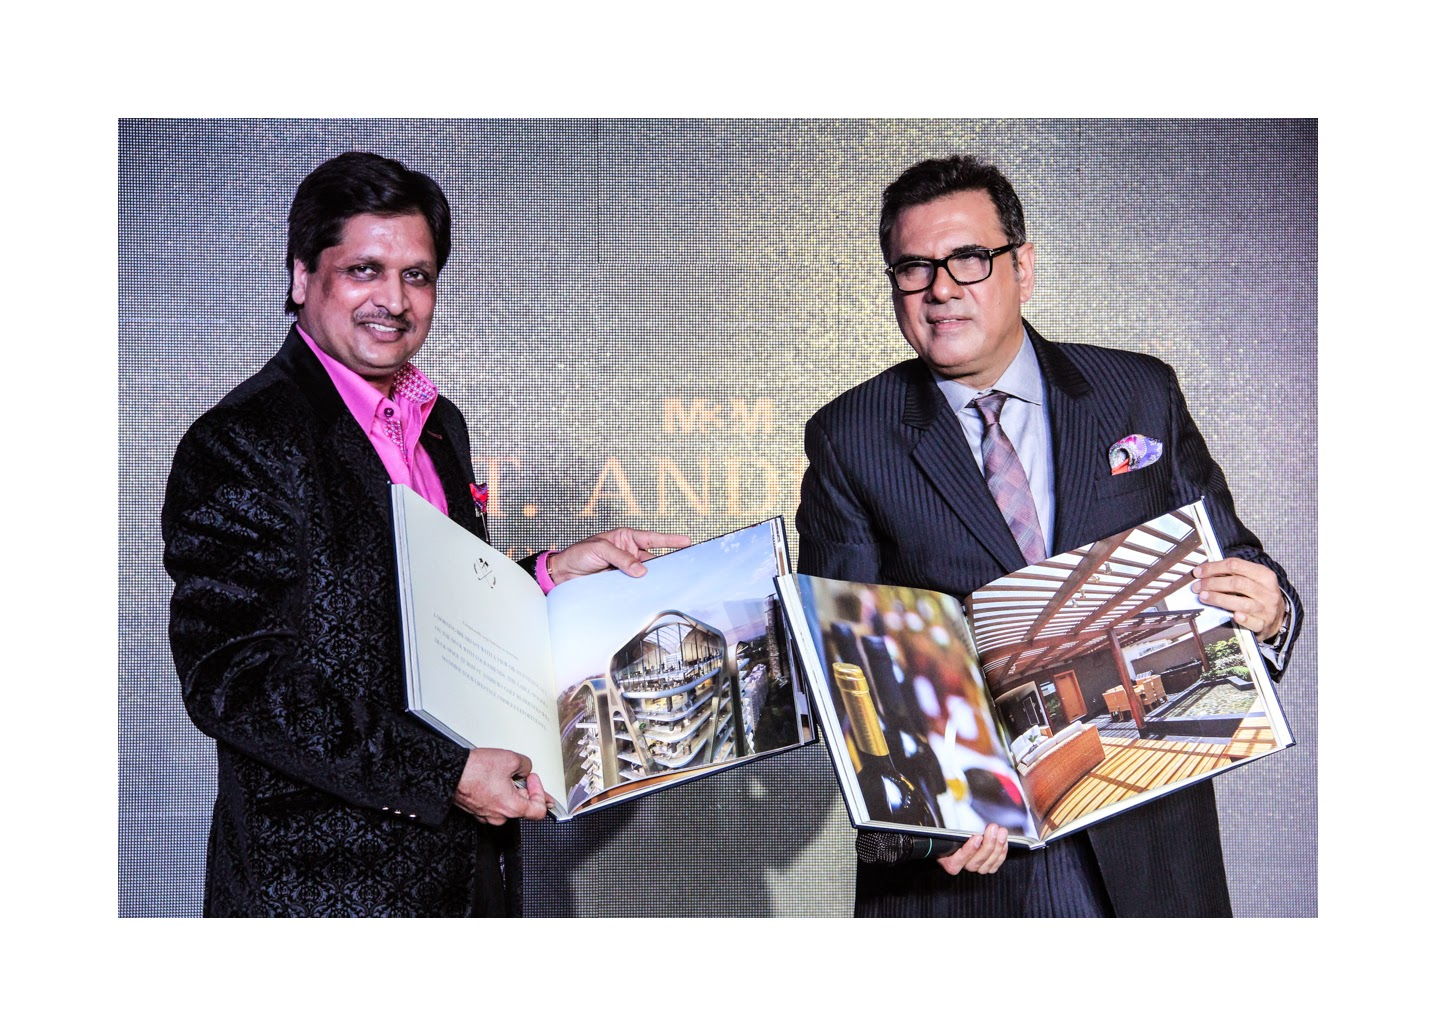 M3M India announces the launch of it ultra-luxury project, St. Andrews Golf Residences at The Oberoi, Delhi